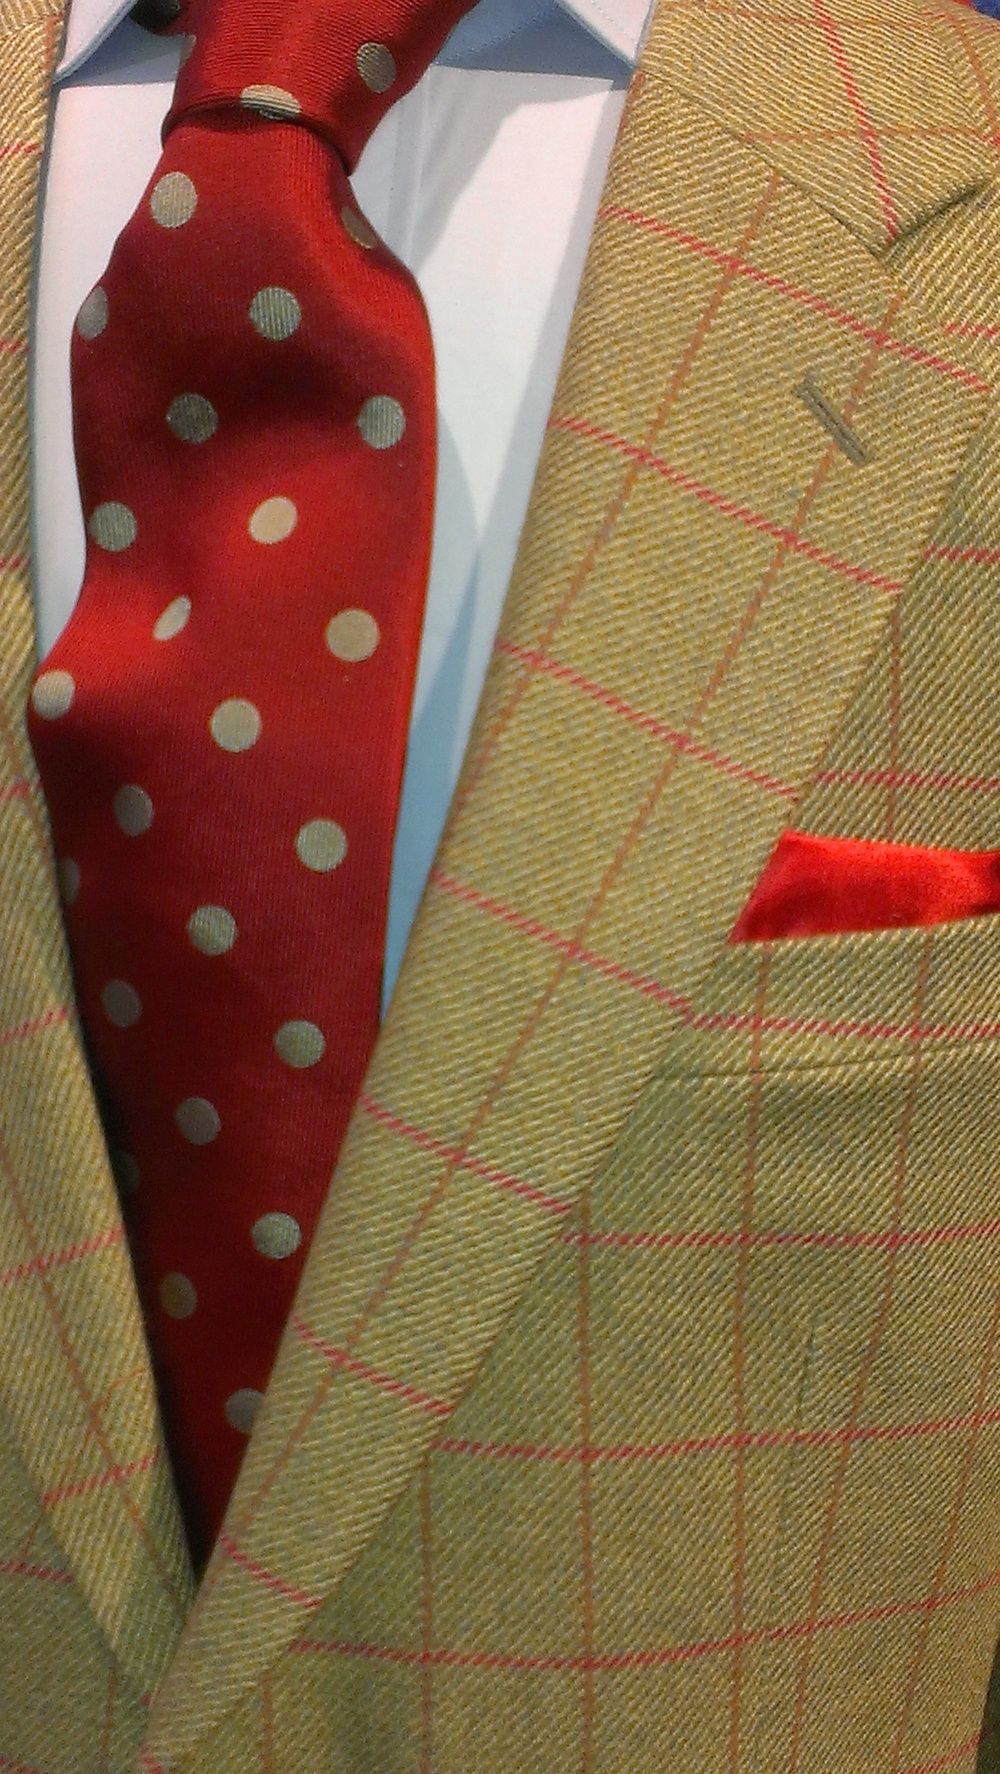 dugdale-british-tweed-jacket-ready-to-wear-all-uk-made.jpg